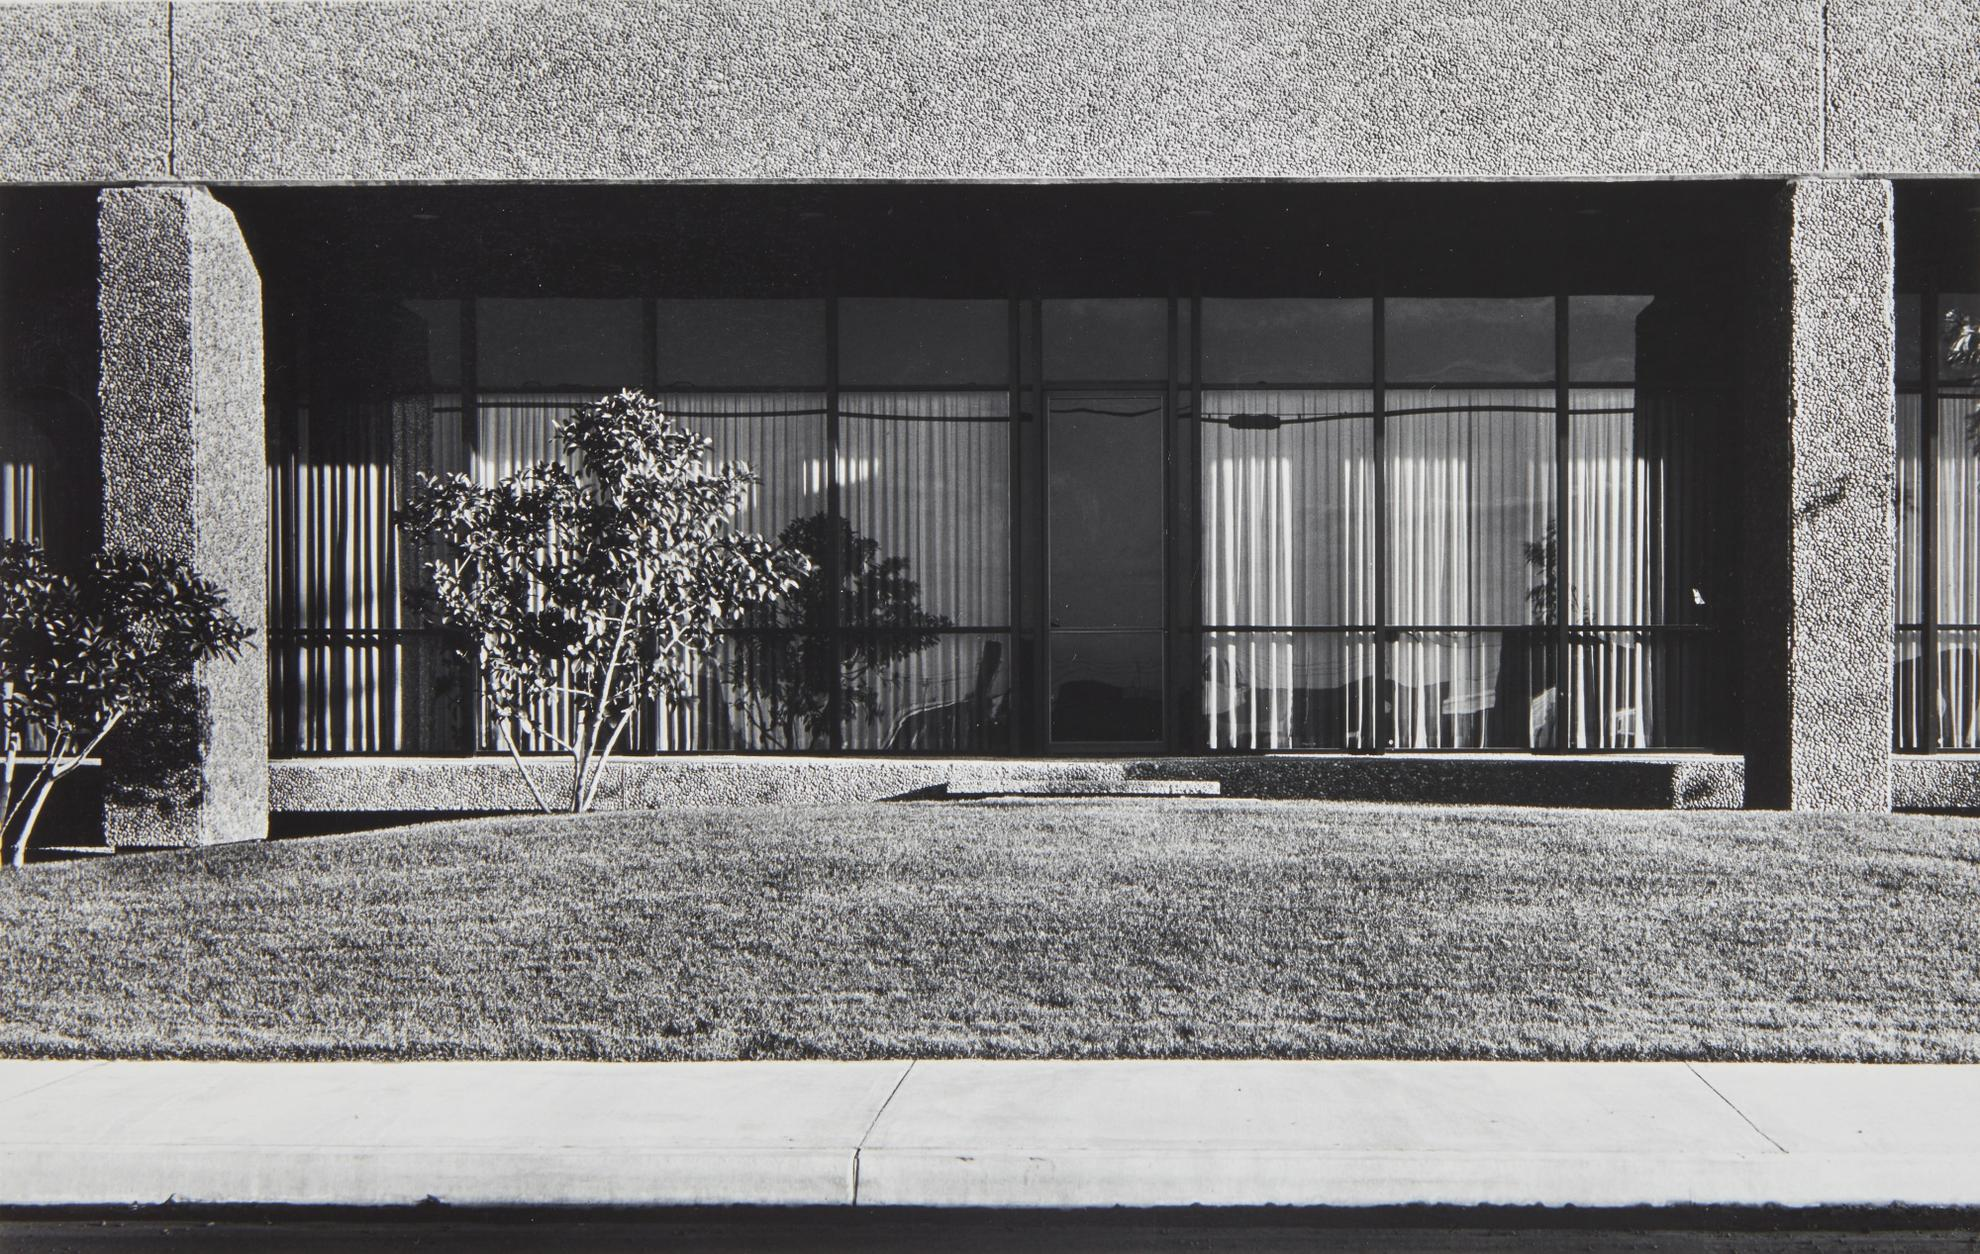 Lewis Baltz-New Industrial Parks #41: North Wall, General Offices, Rb Furniture, 2323 Southeast Main Street, Santa Ana-1974